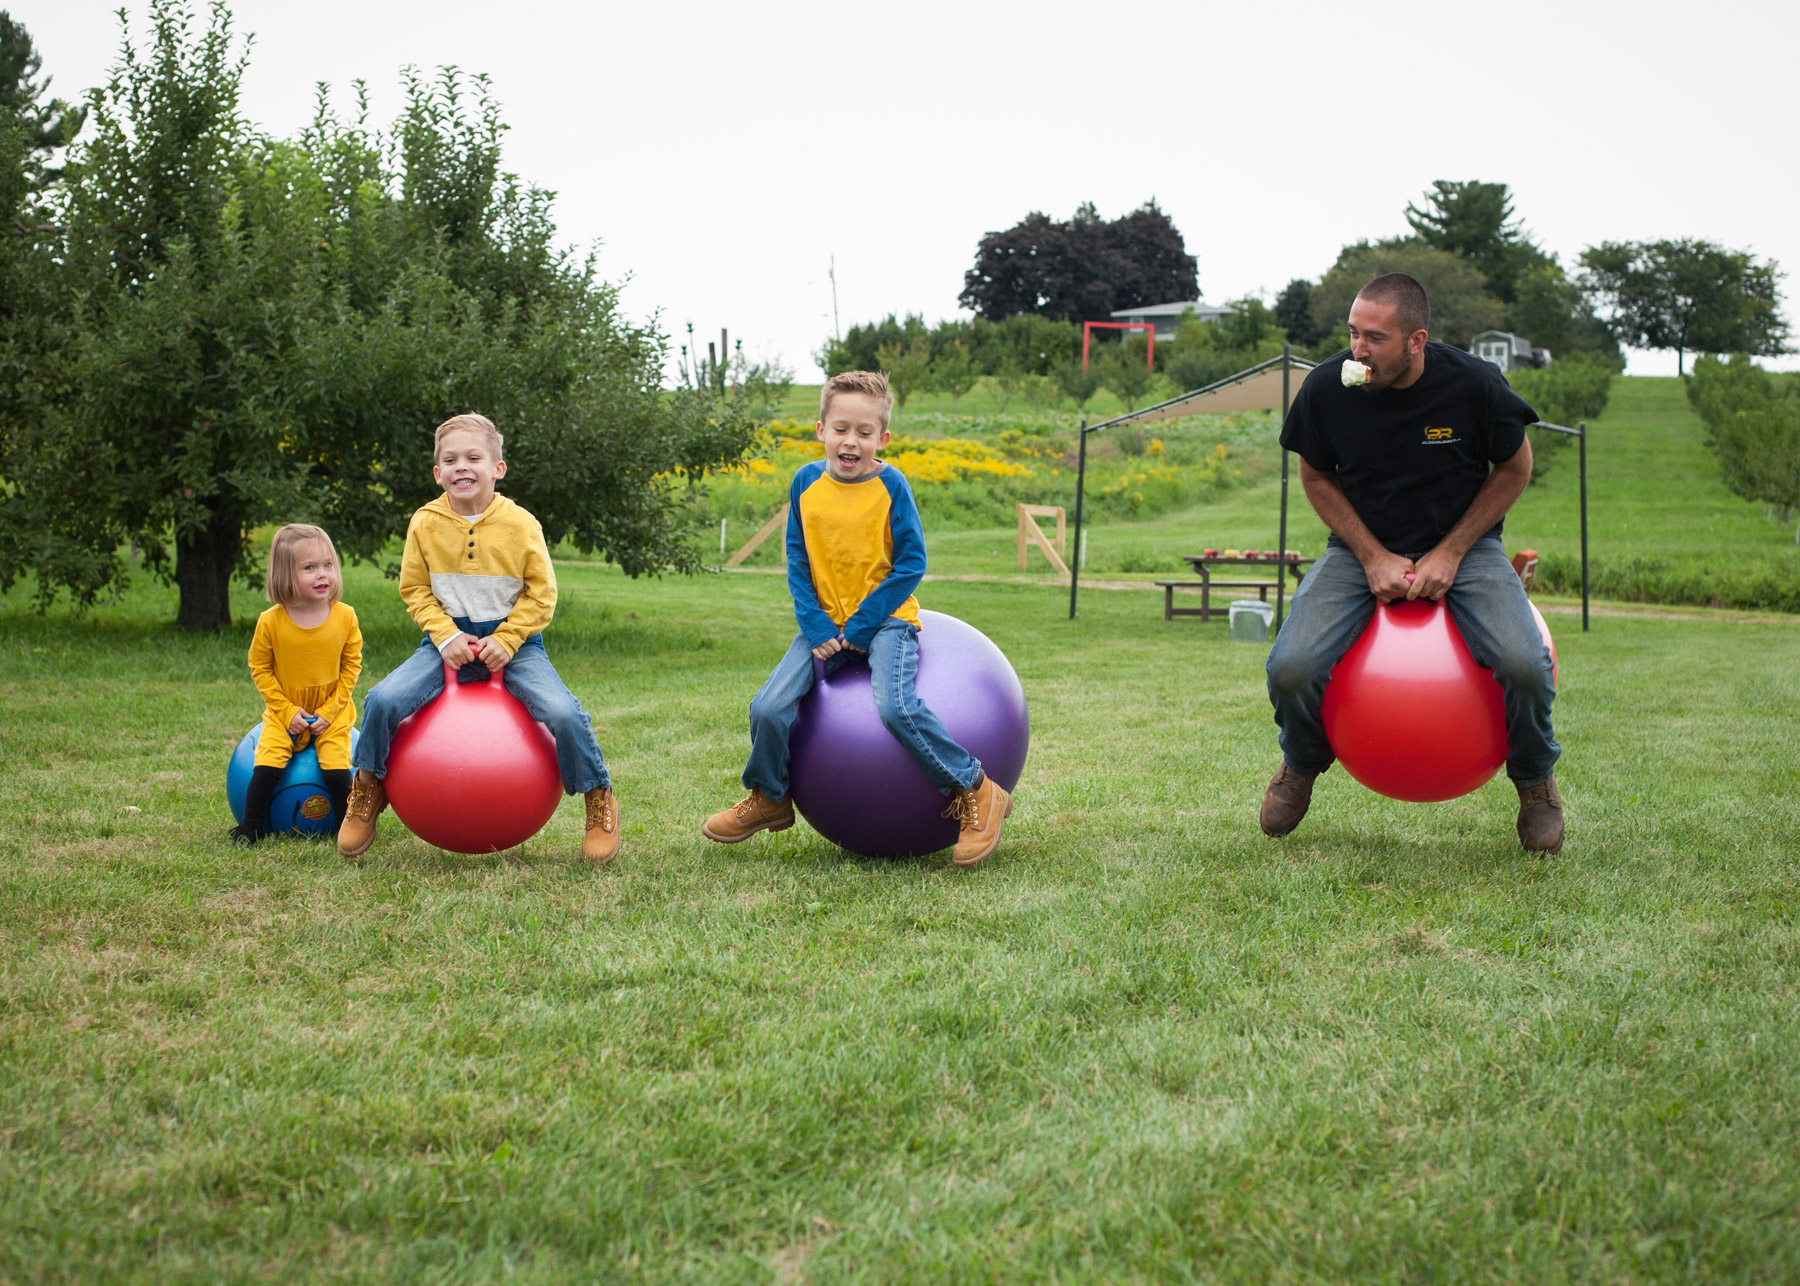 Three kids and their dad line up and race on giant bouncing balls in a field.